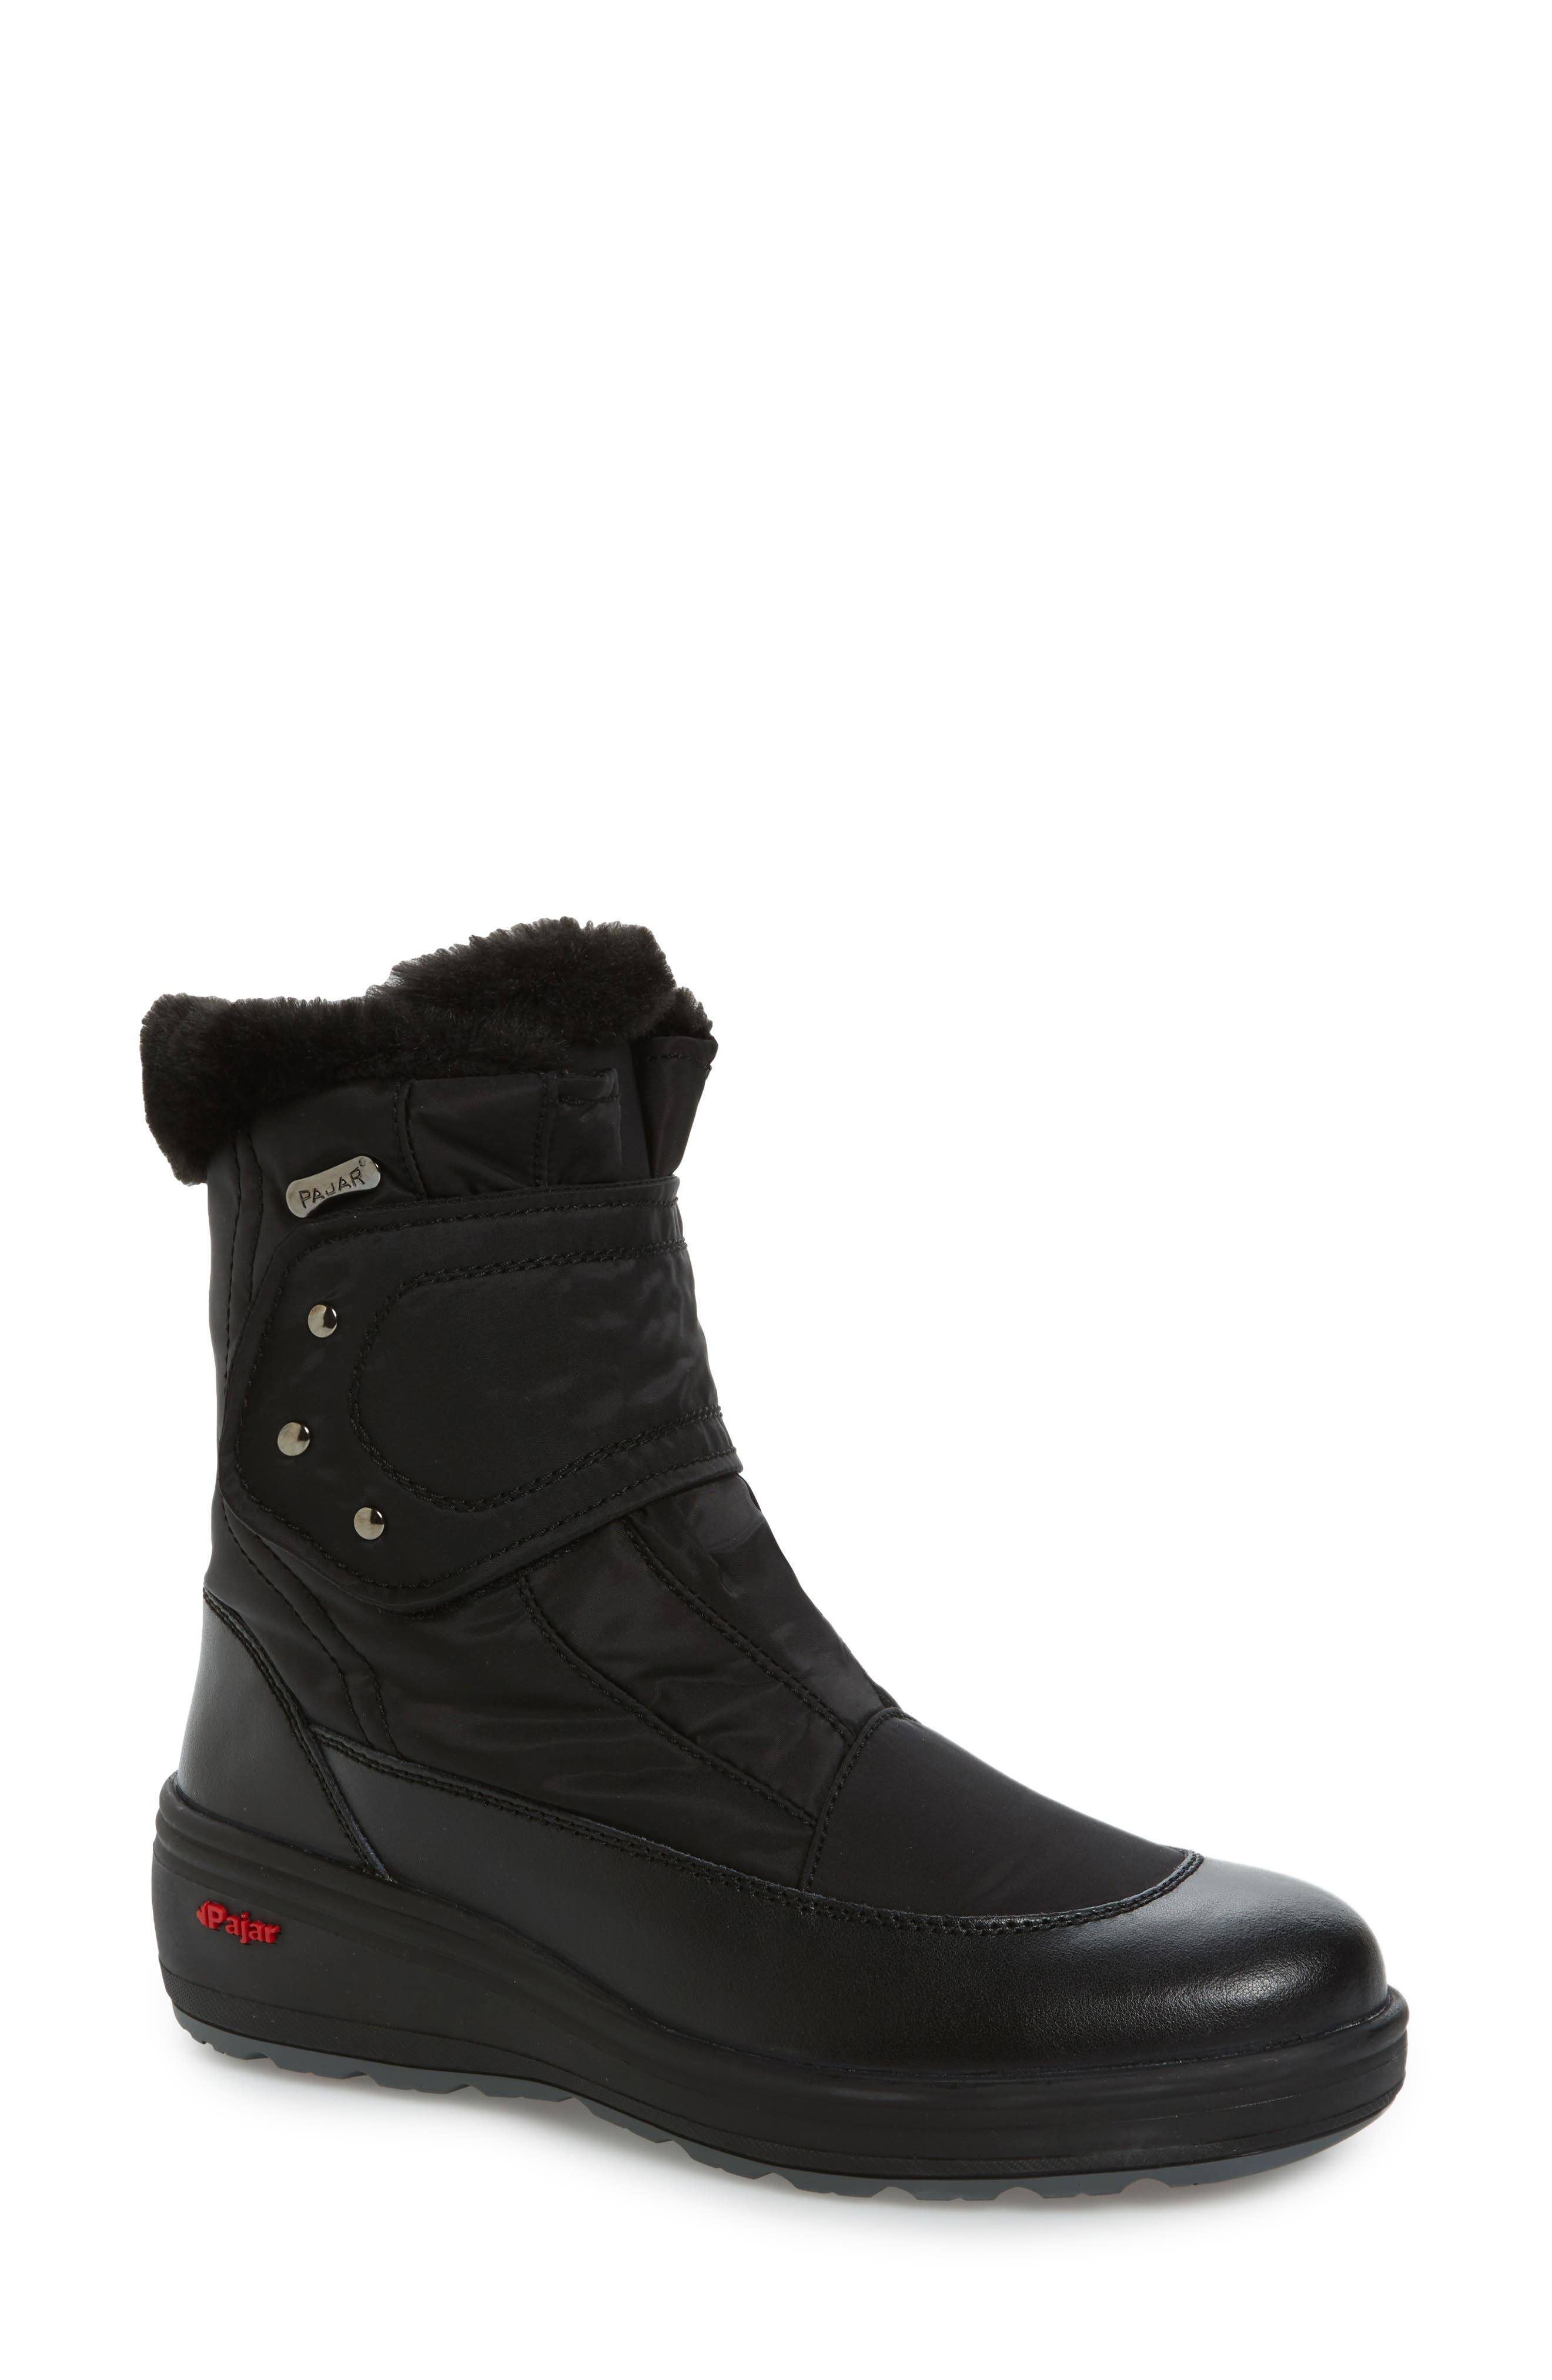 Samara Waterproof Insulated Boot with Faux Fur Lining,                             Main thumbnail 1, color,                             Black Leather